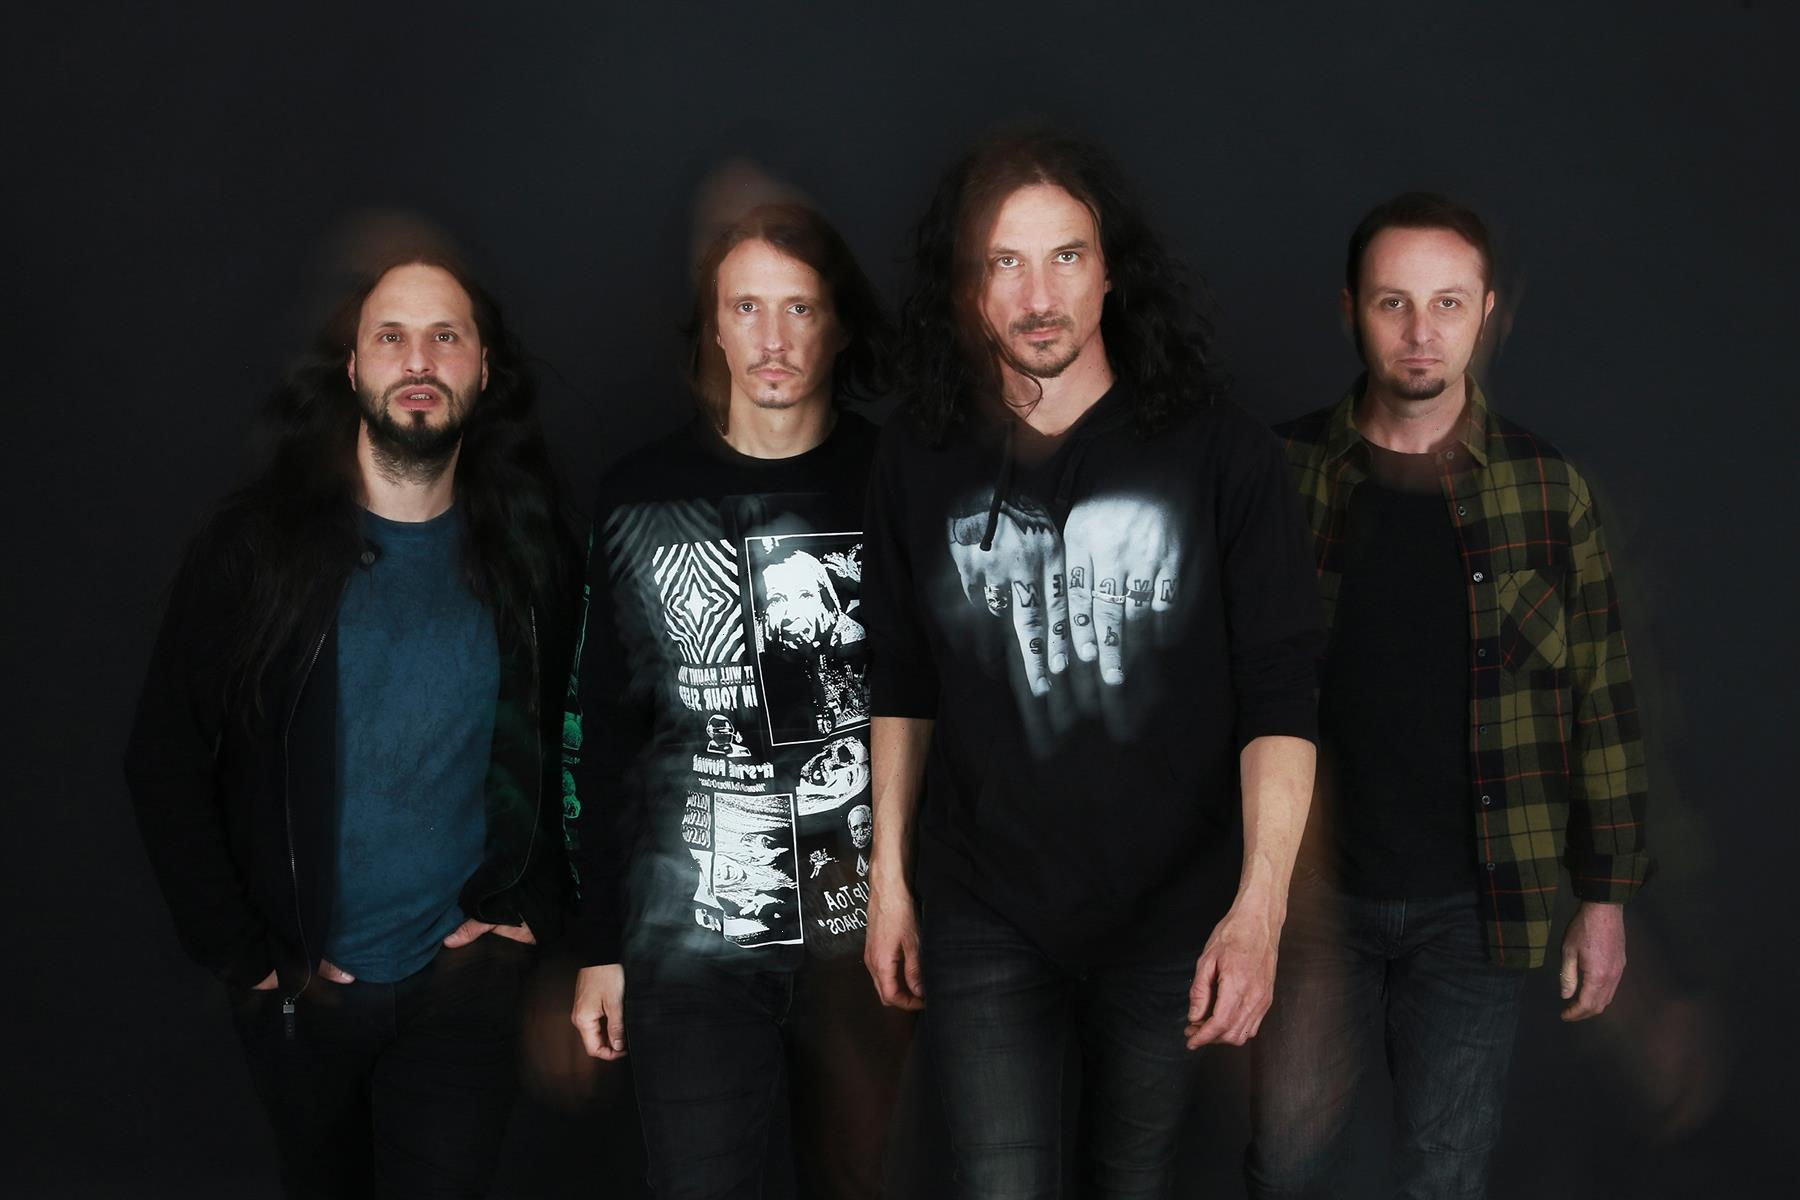 Gojira Release Fiery Single 'Into the Storm' Ahead of New Album 'Fortitude'